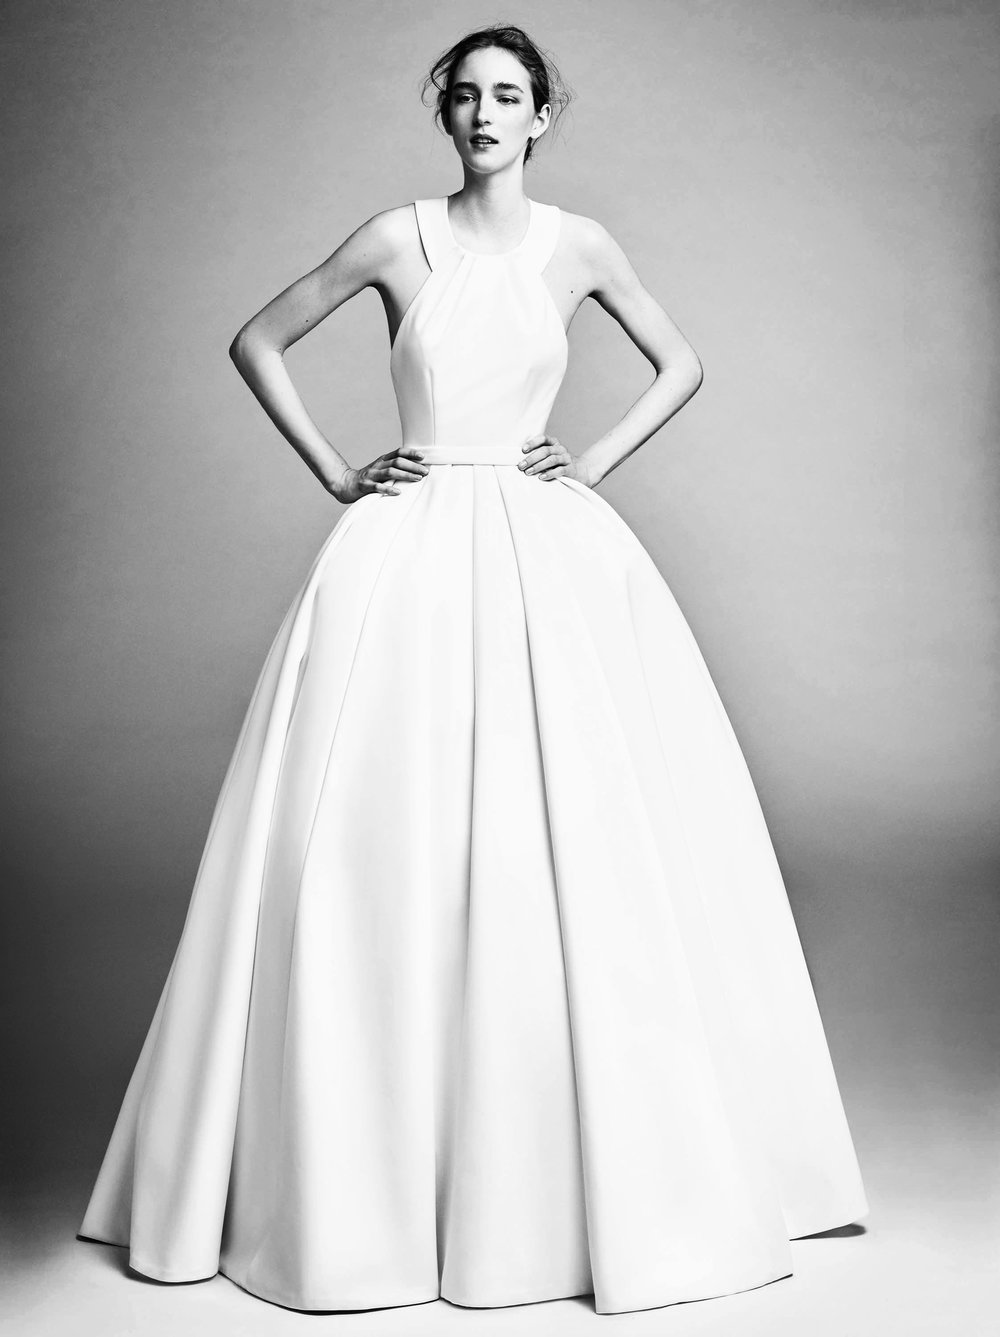 LOVE FIND CO. // The hottest bridal gown trends of 2016 - Viktor & Rolf // Follow @lovefindco on Instagram & Pinterest